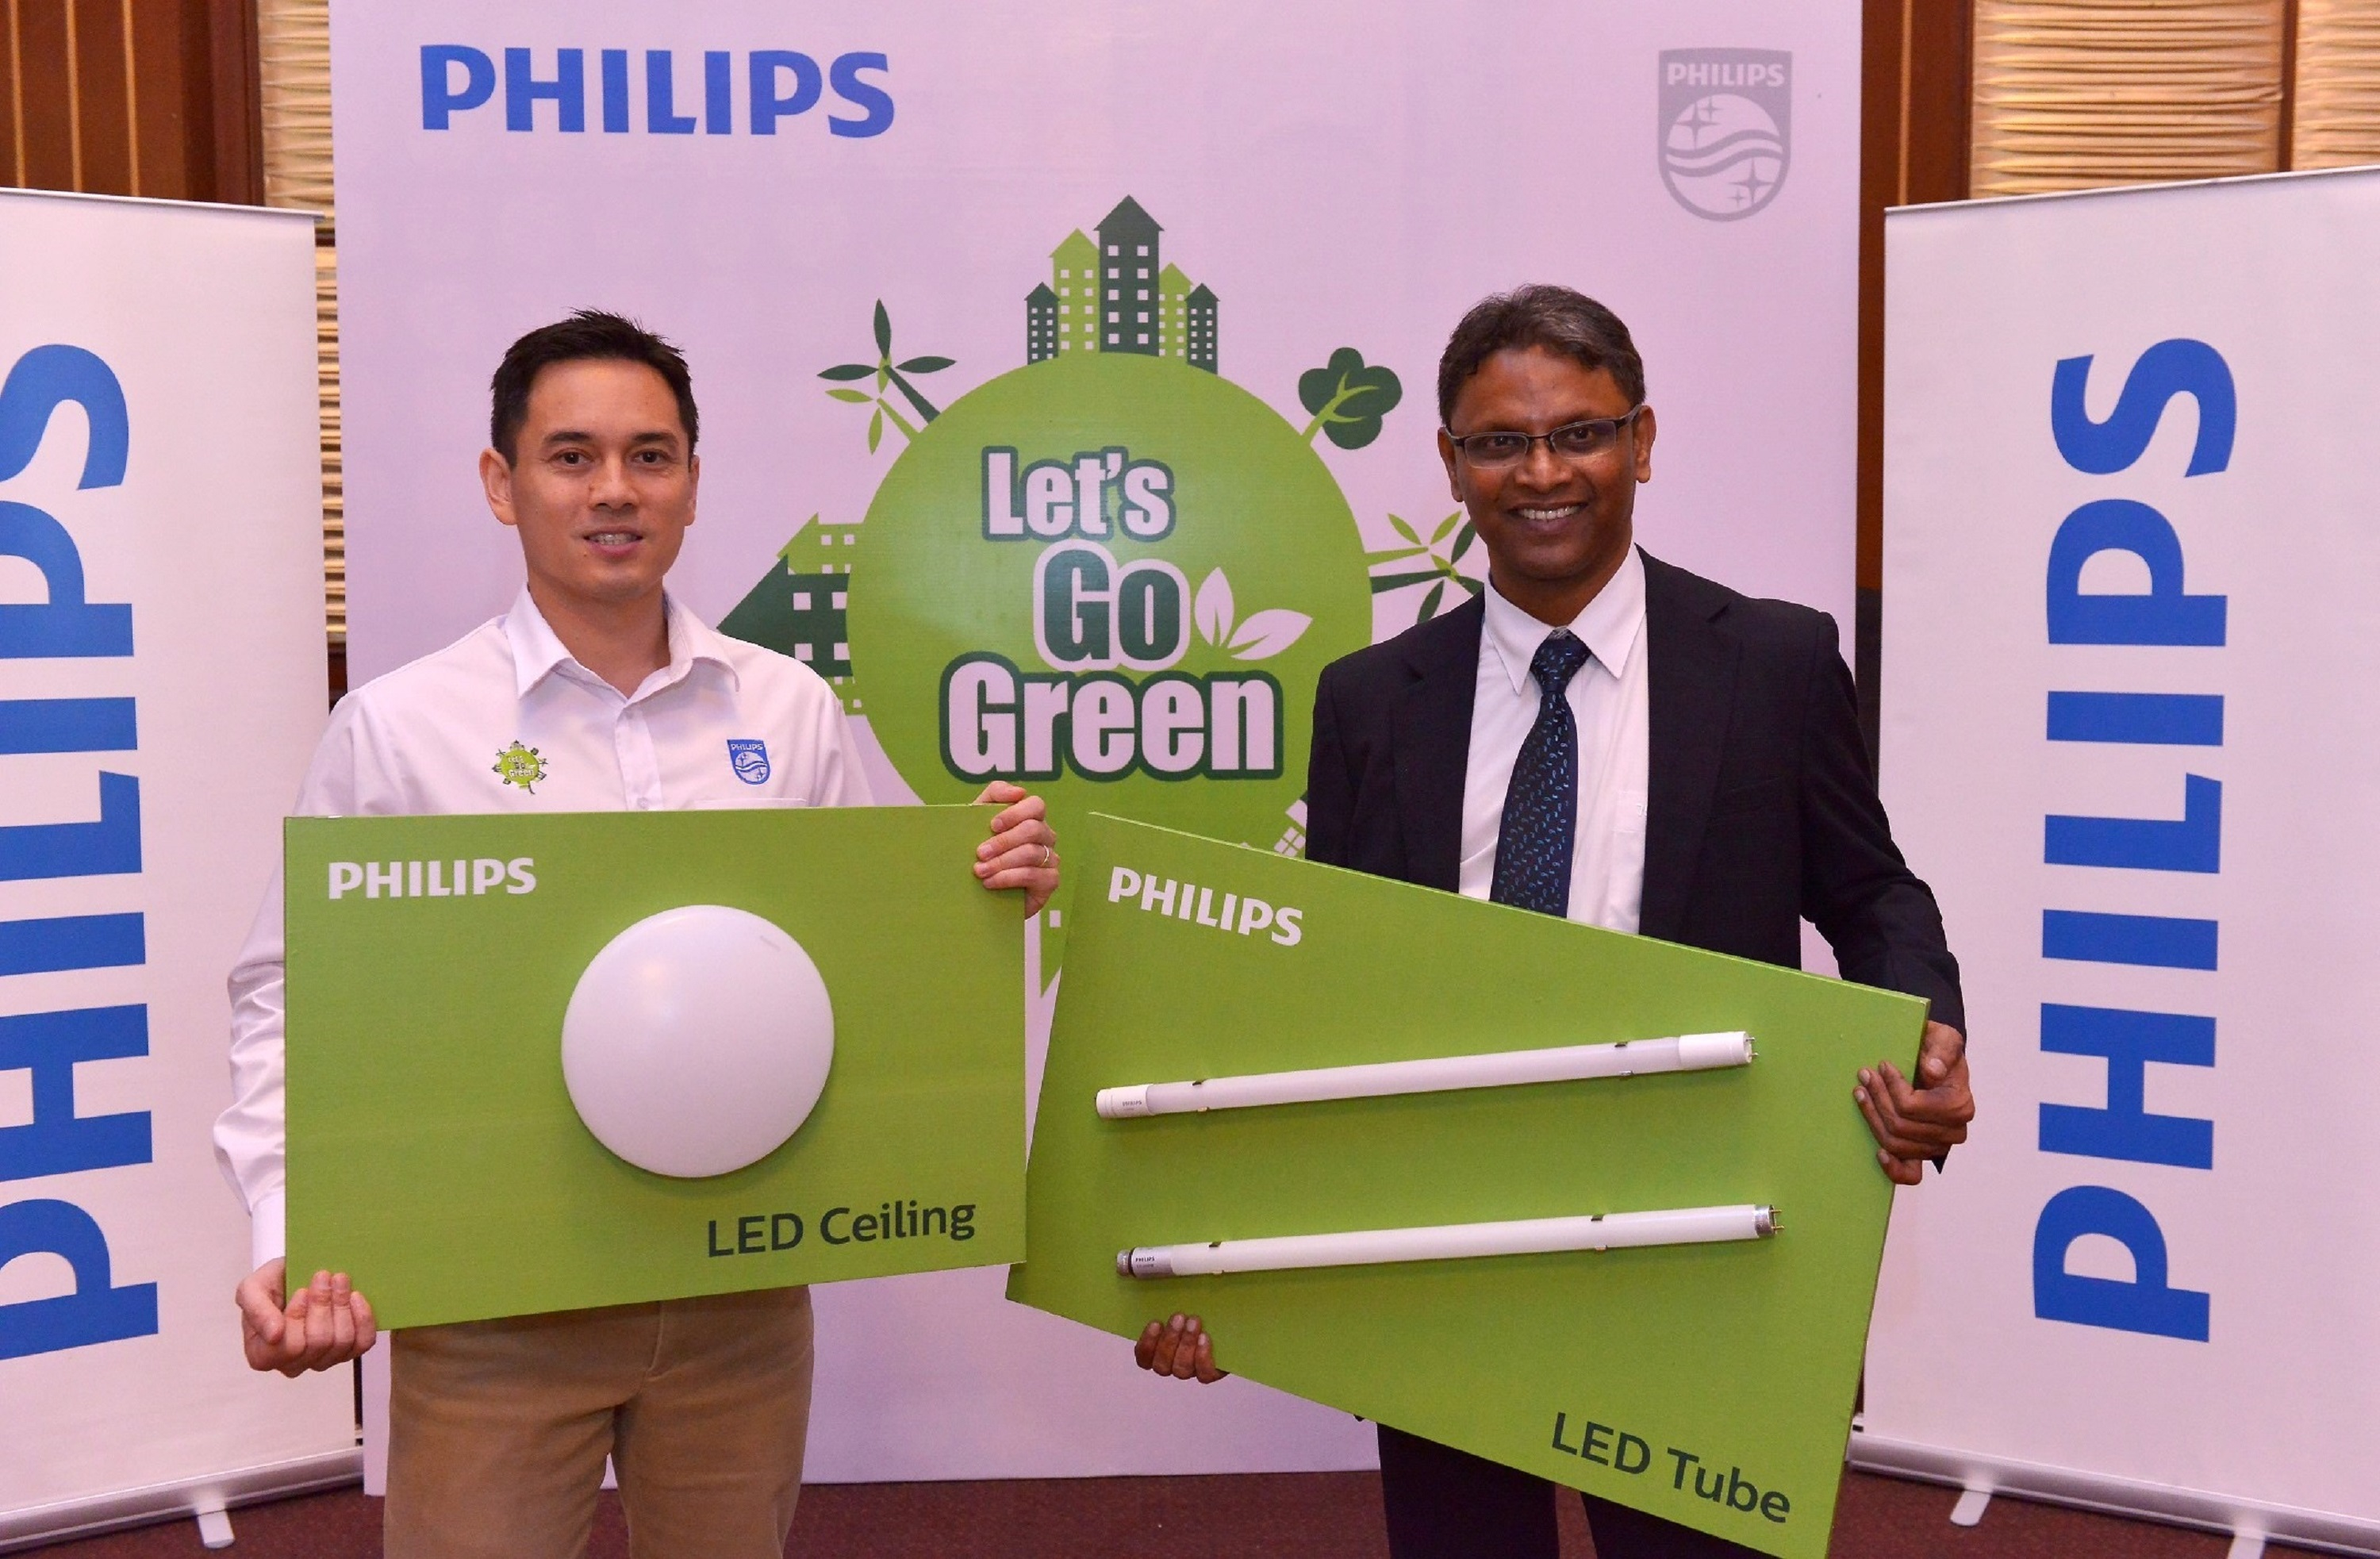 Semasa Painting Our Towns Green With The Philips Let S Go Green Campaign Galaksi Media